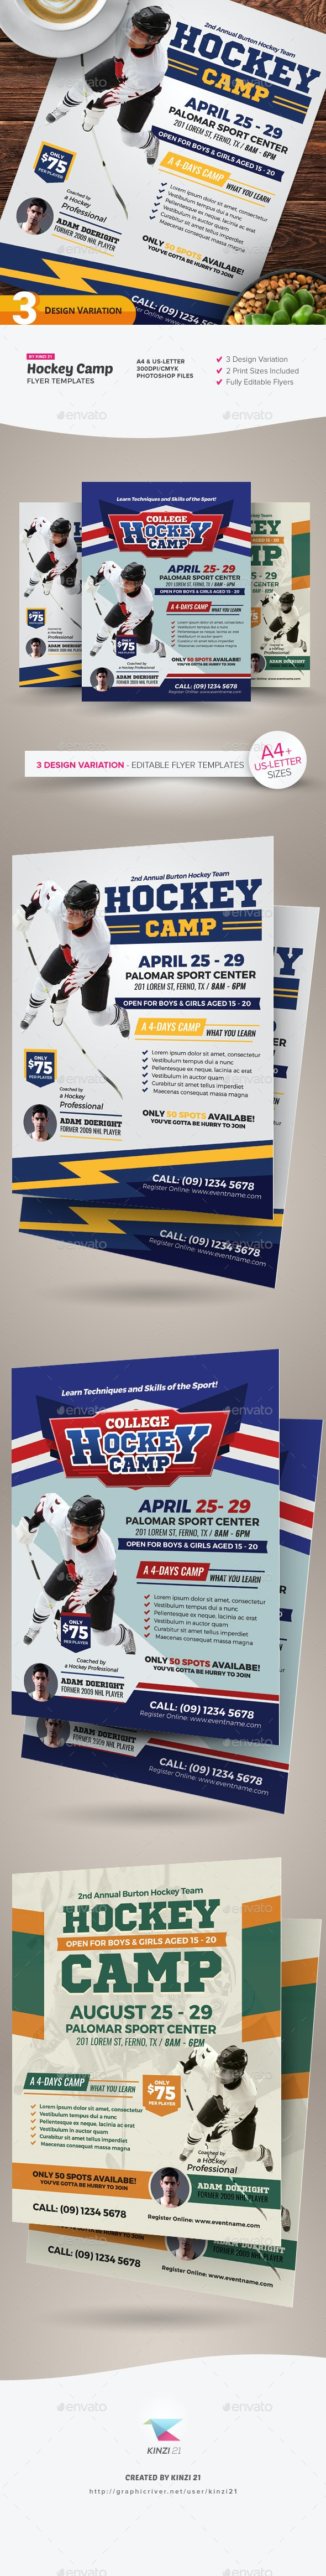 Hockey Camp Flyer Templates - Sports Events